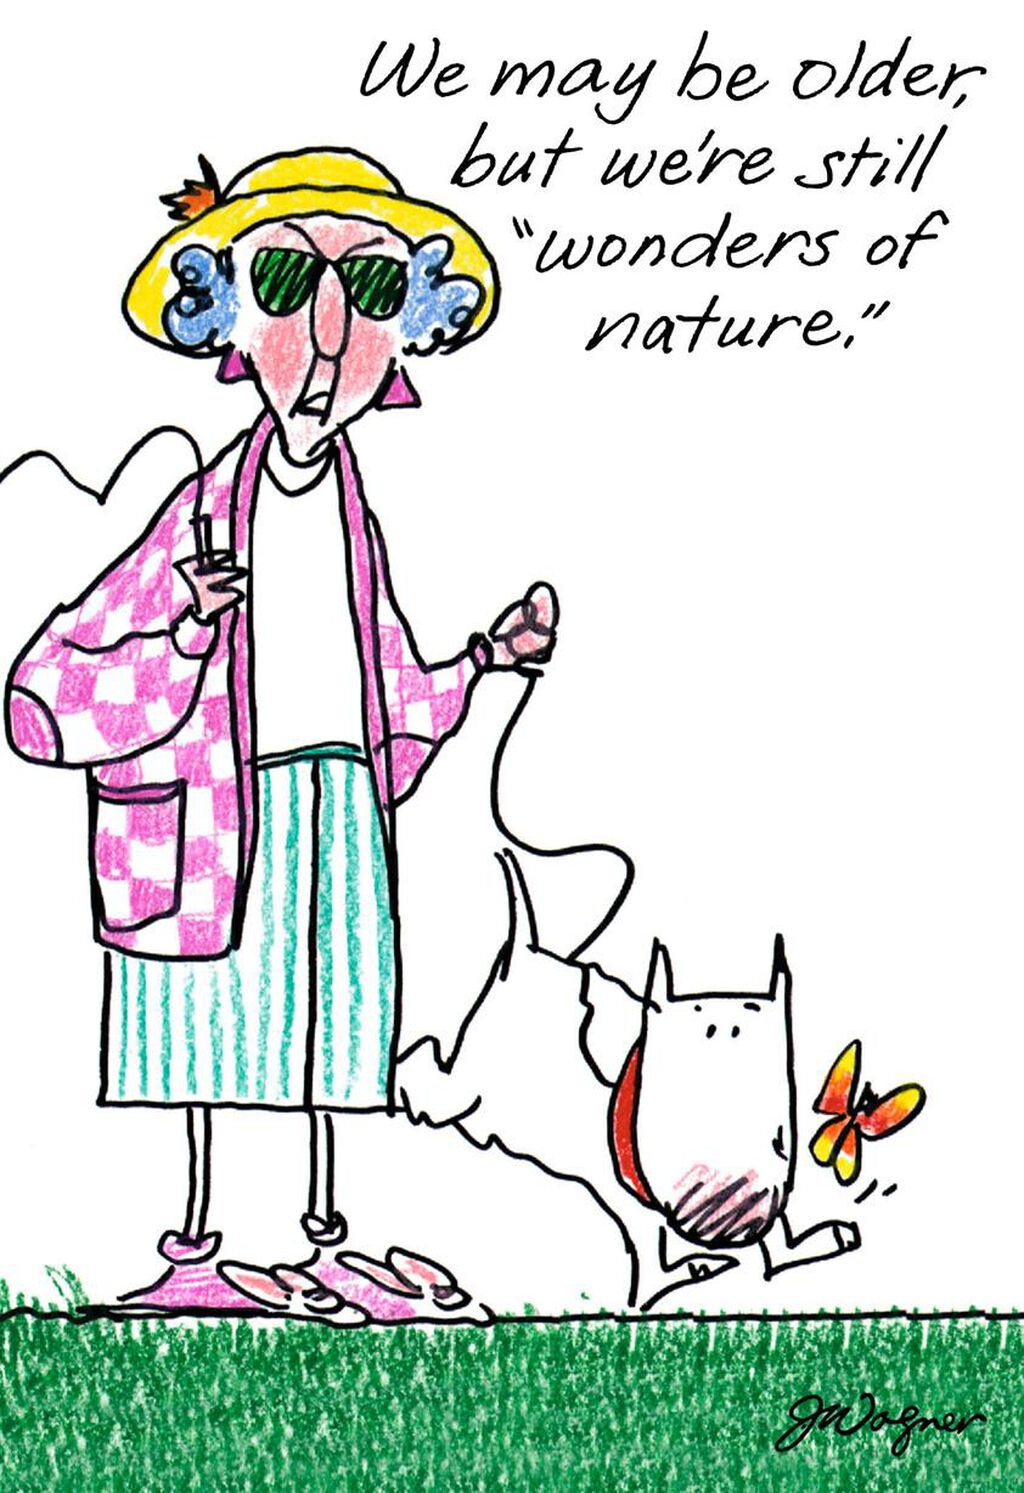 Maxine Wonders Of Nature Funny Birthday Card Greeting Cards